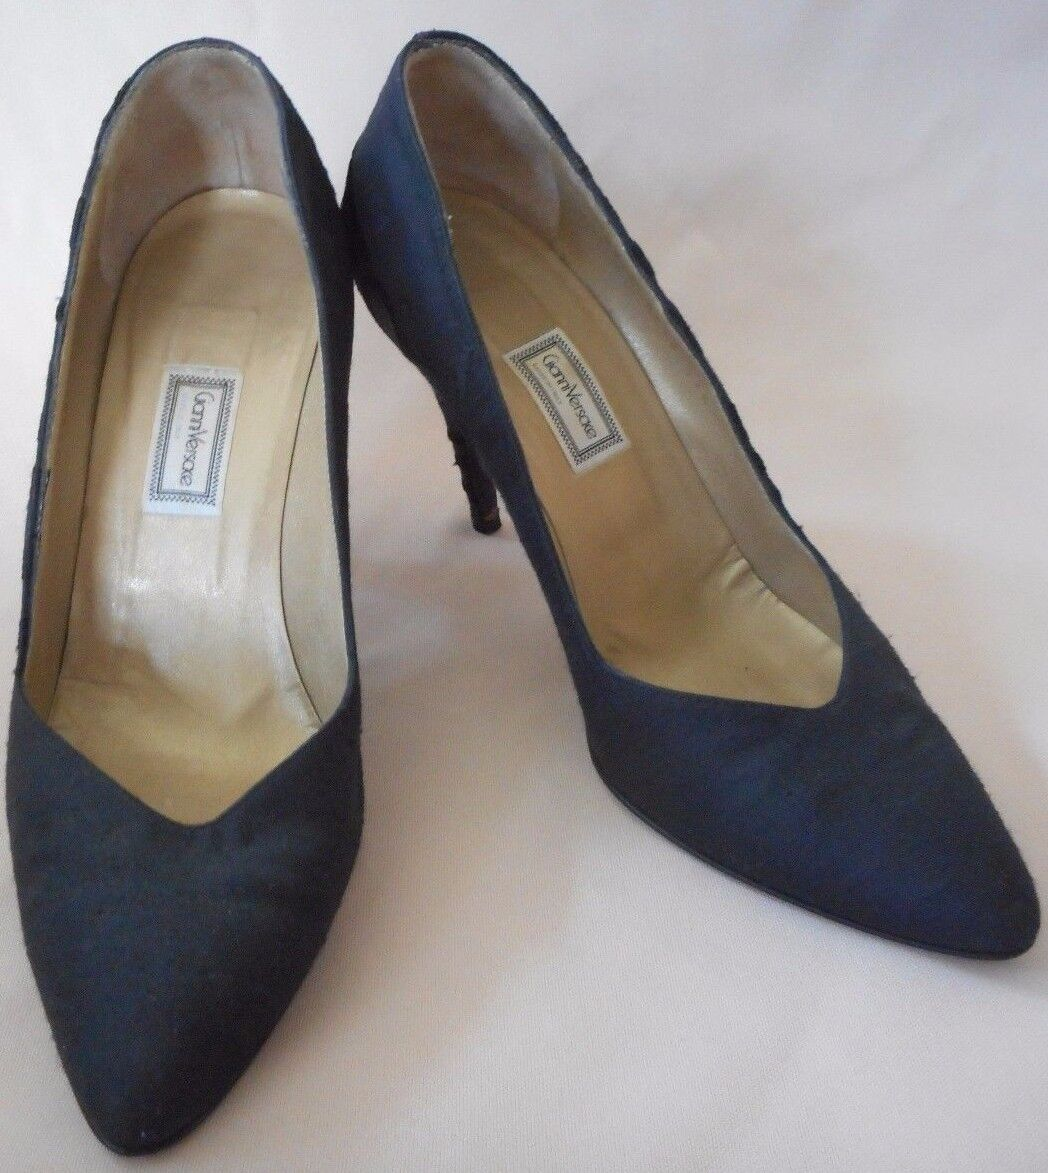 Vintage Gianni Versace Monogram Classic Pumps shoes Size 37 1 2